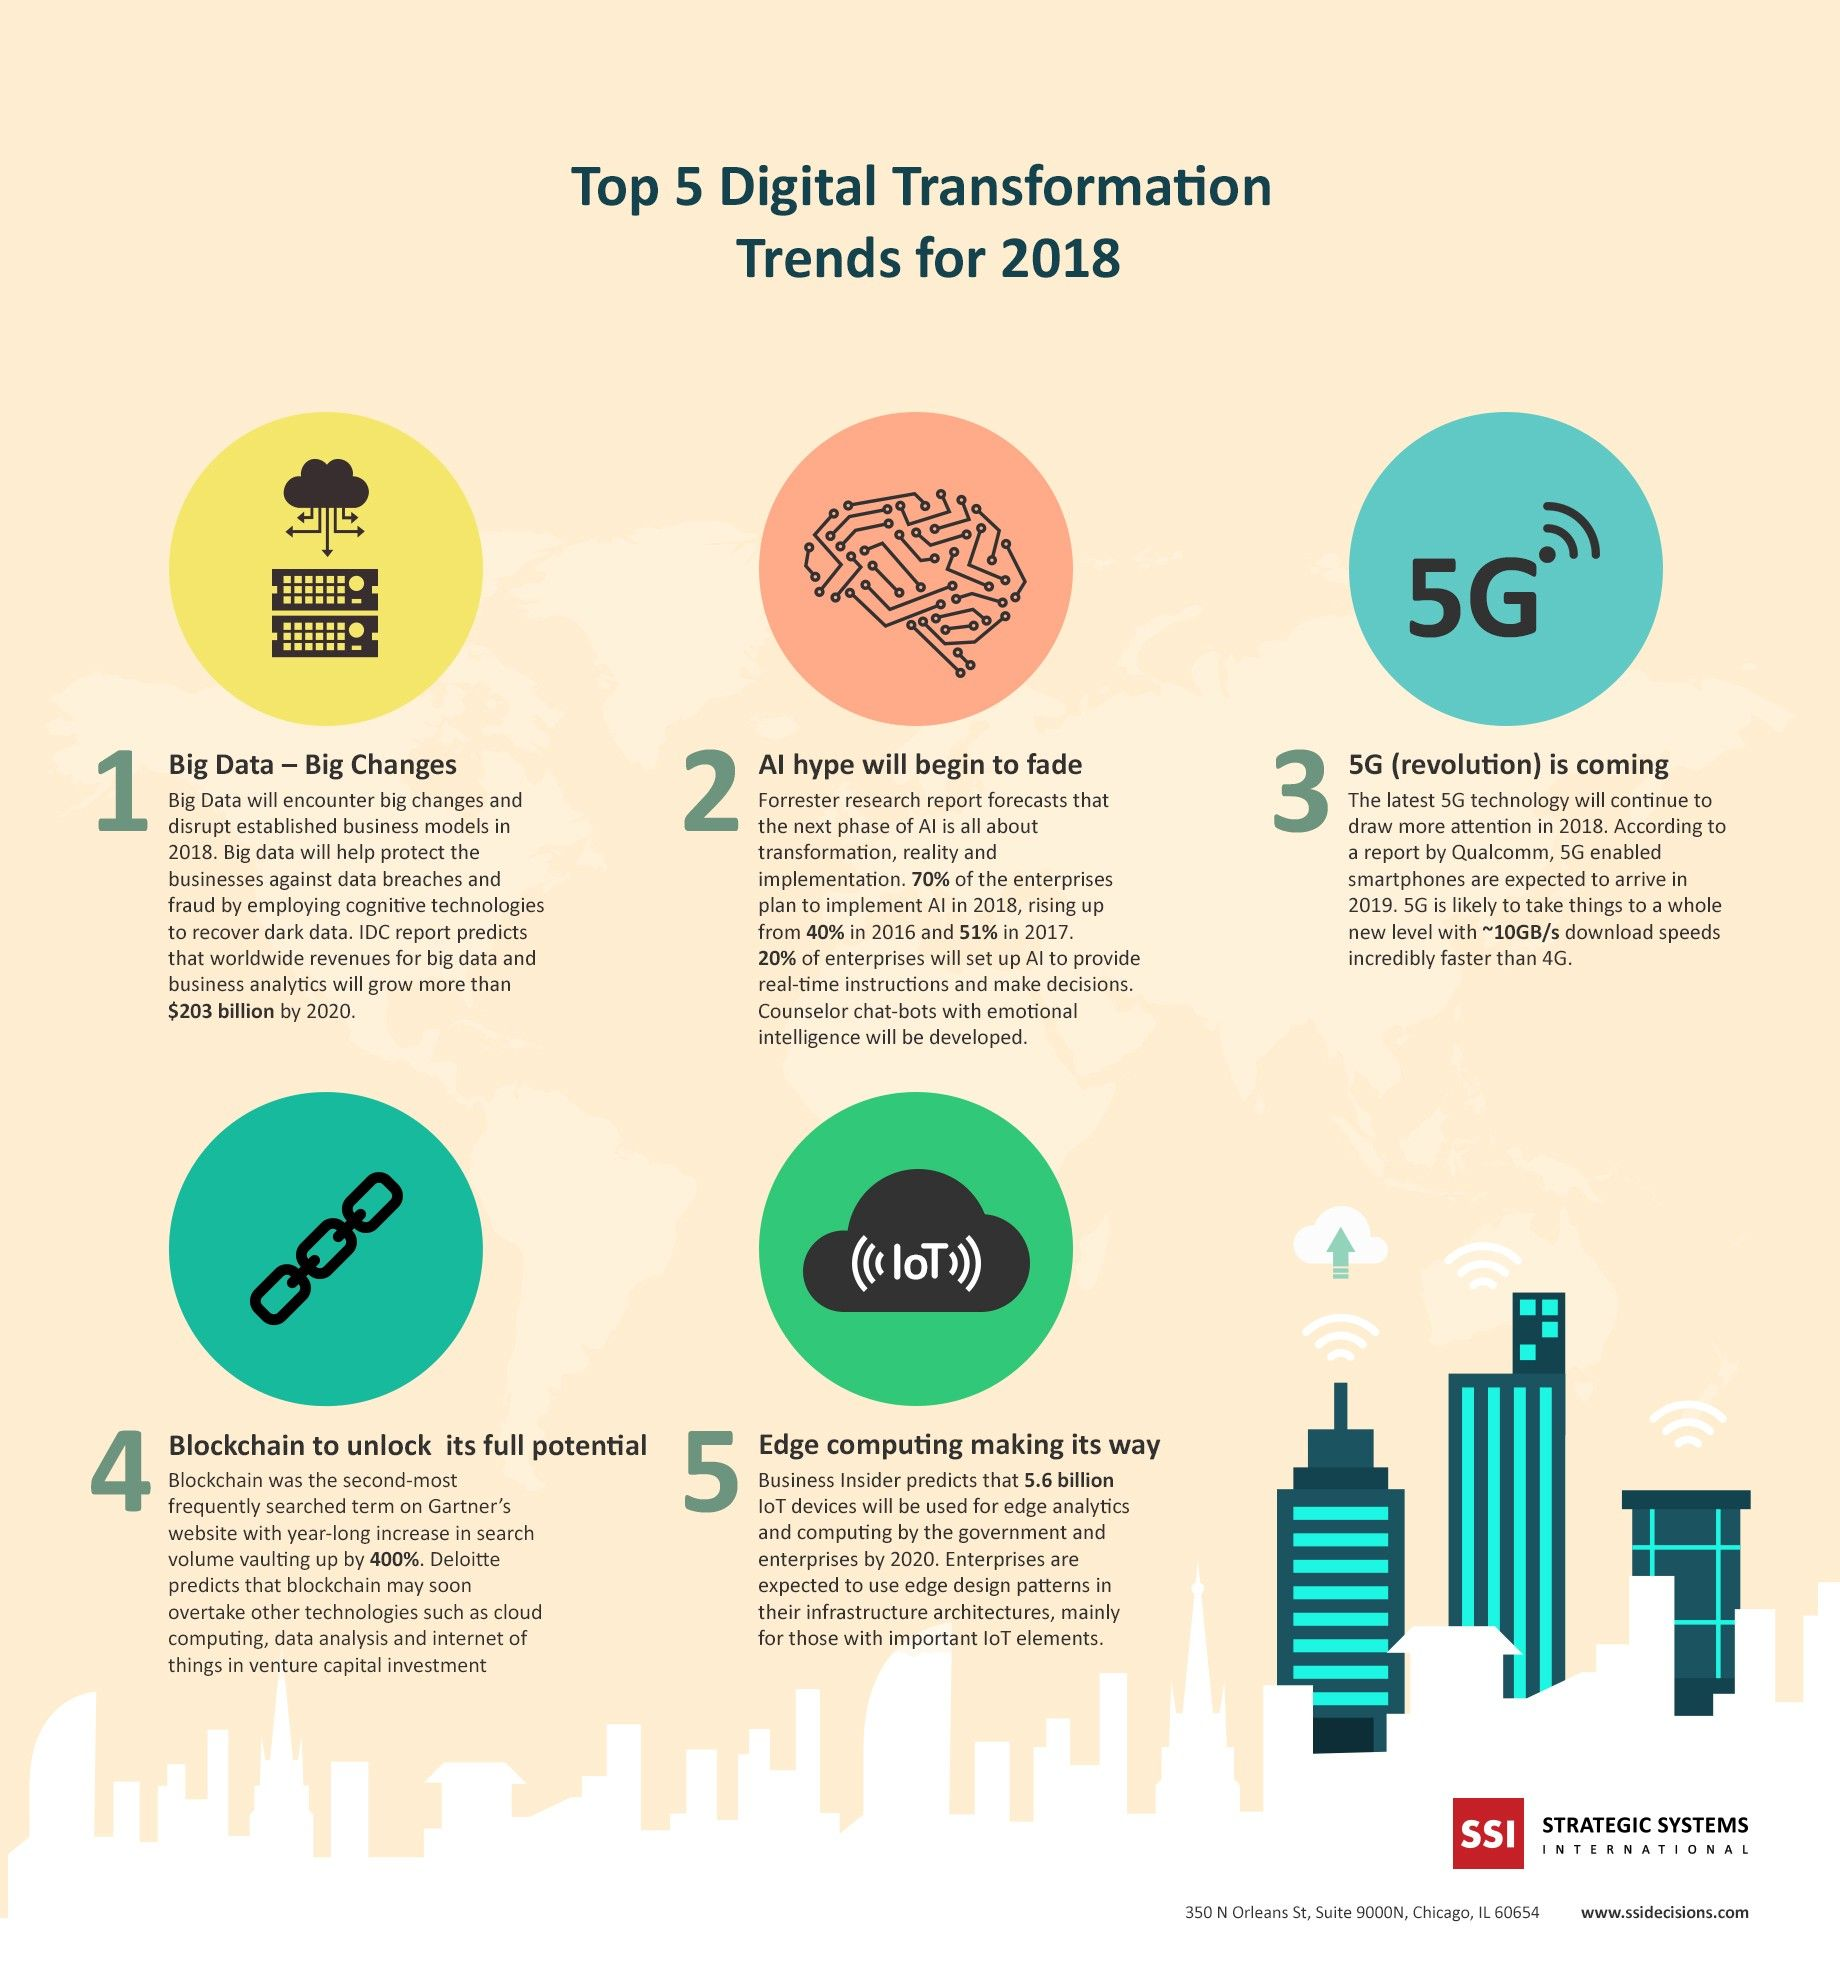 Top 5 Digital Transformation Trends For 2018 Infographic Digital Transformation Big Data Digital